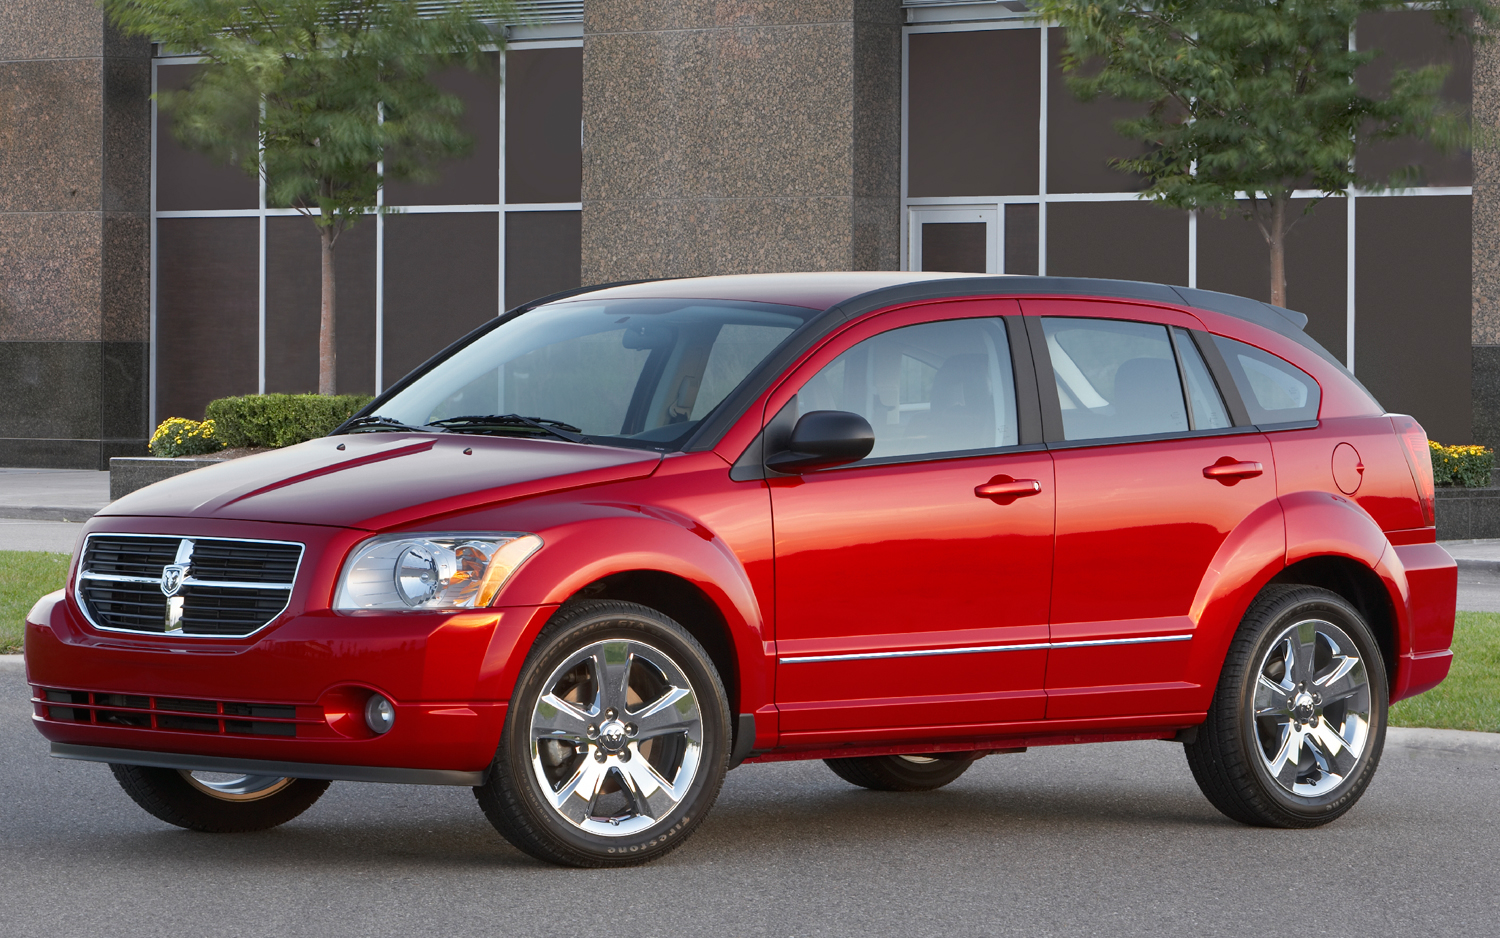 We Hear Dodge Caliber Bites The Dust New Small Car Coming Soon